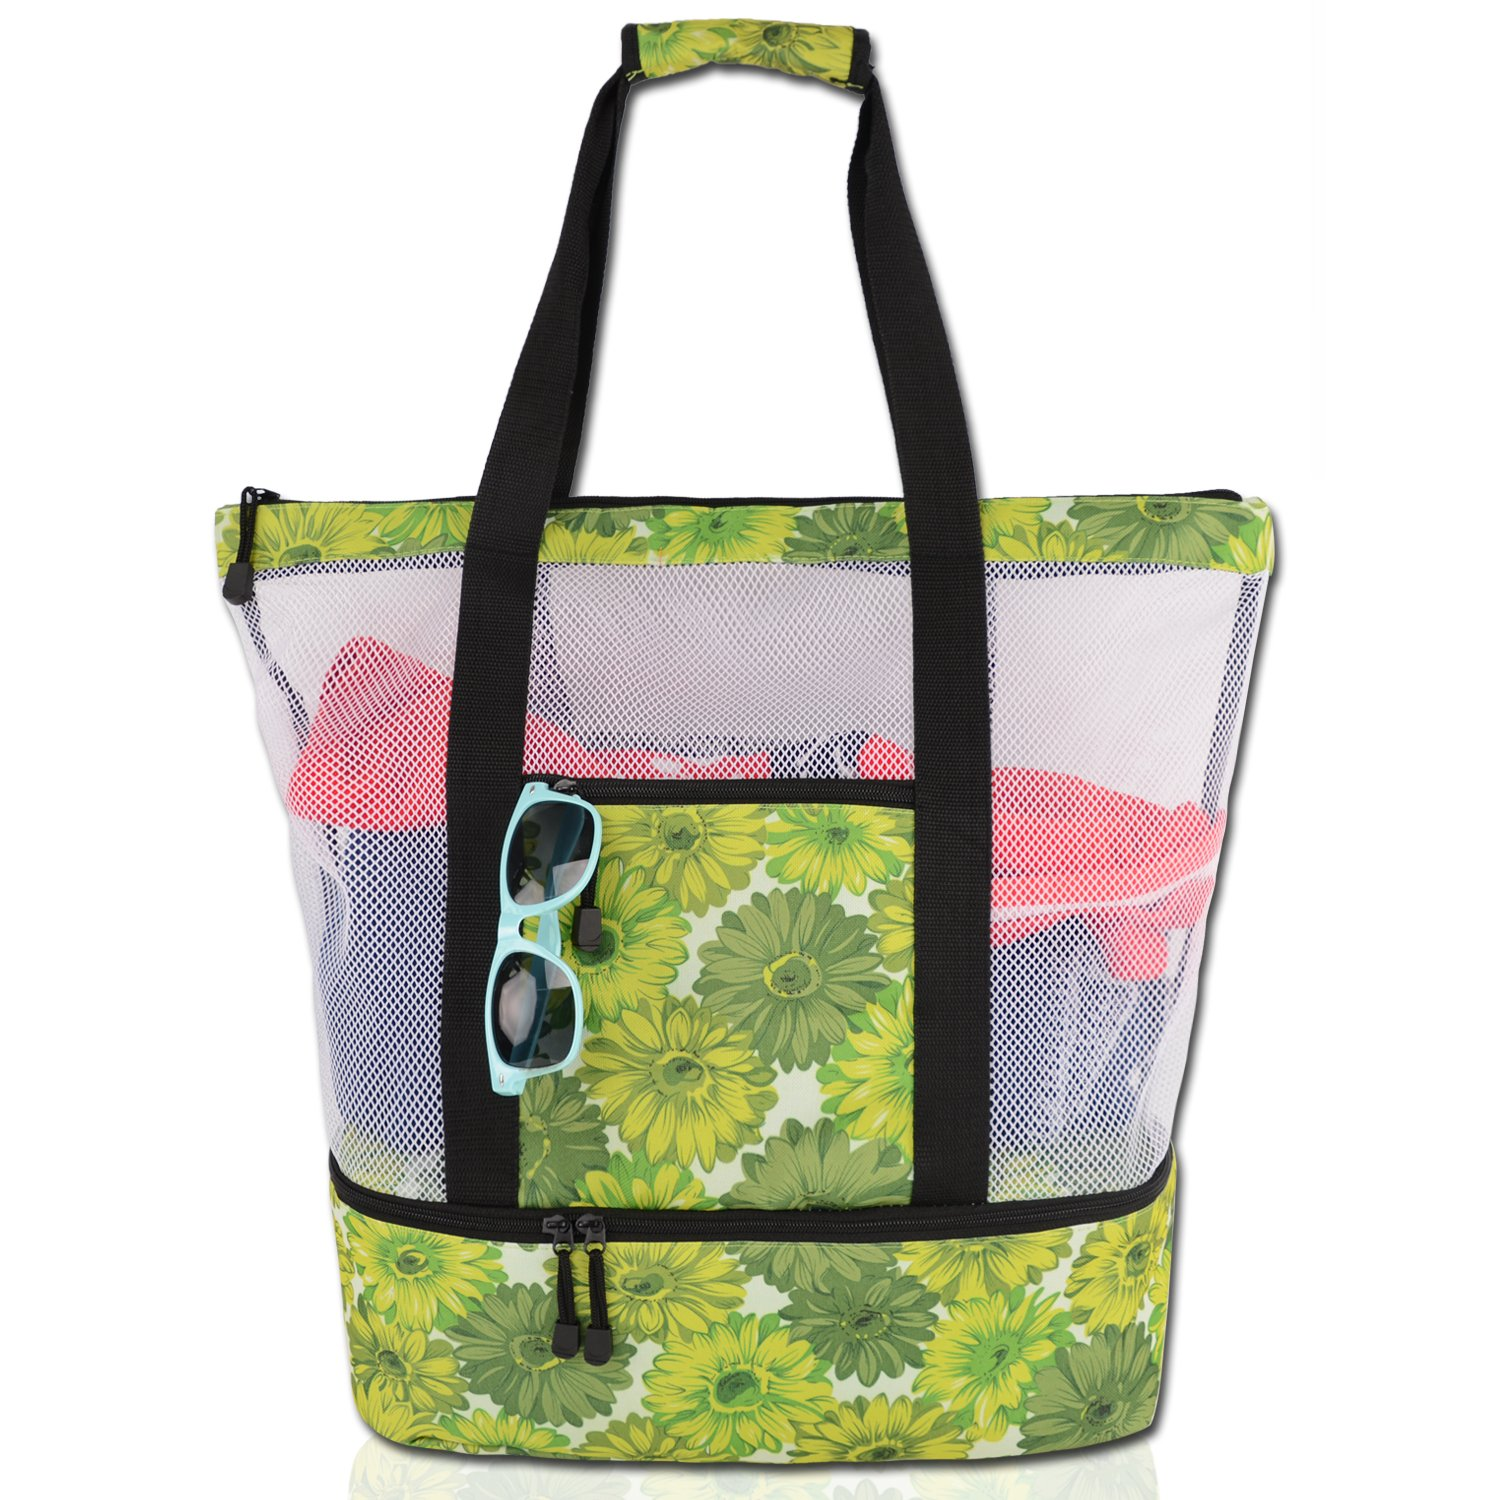 Rotanet Mesh Beach Tote Bag-Zipper Top with Insulated Picnic Cooler Extra Large (Green Flower)